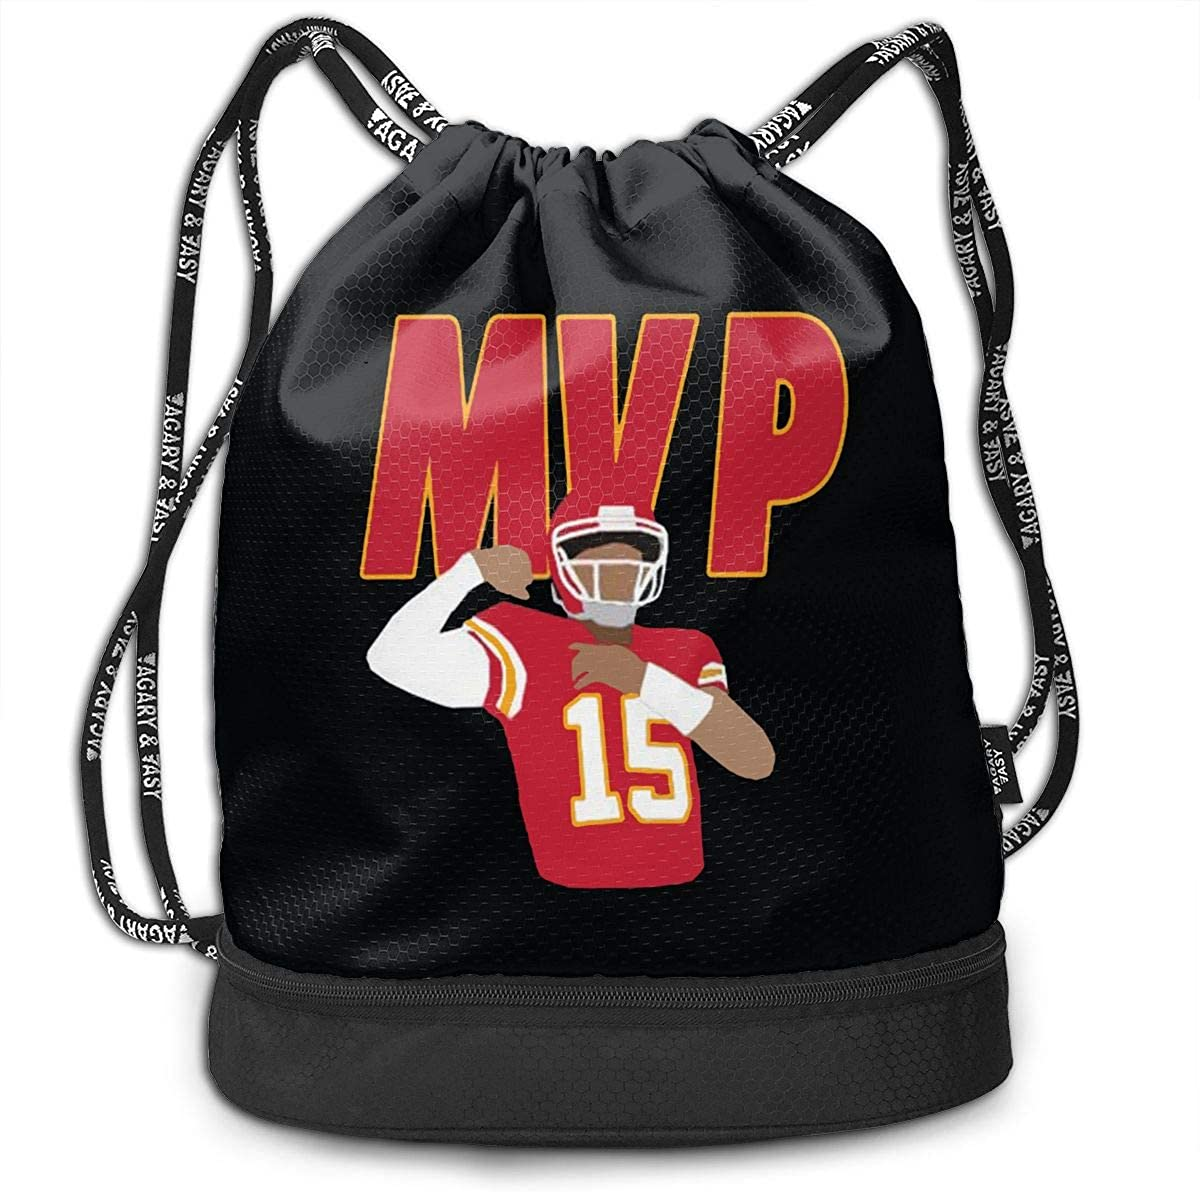 Drawstring Bag Kansas City Mahomes MVP Gym Bag Sport Backpack Shoulder Bags Travel College Rucksack